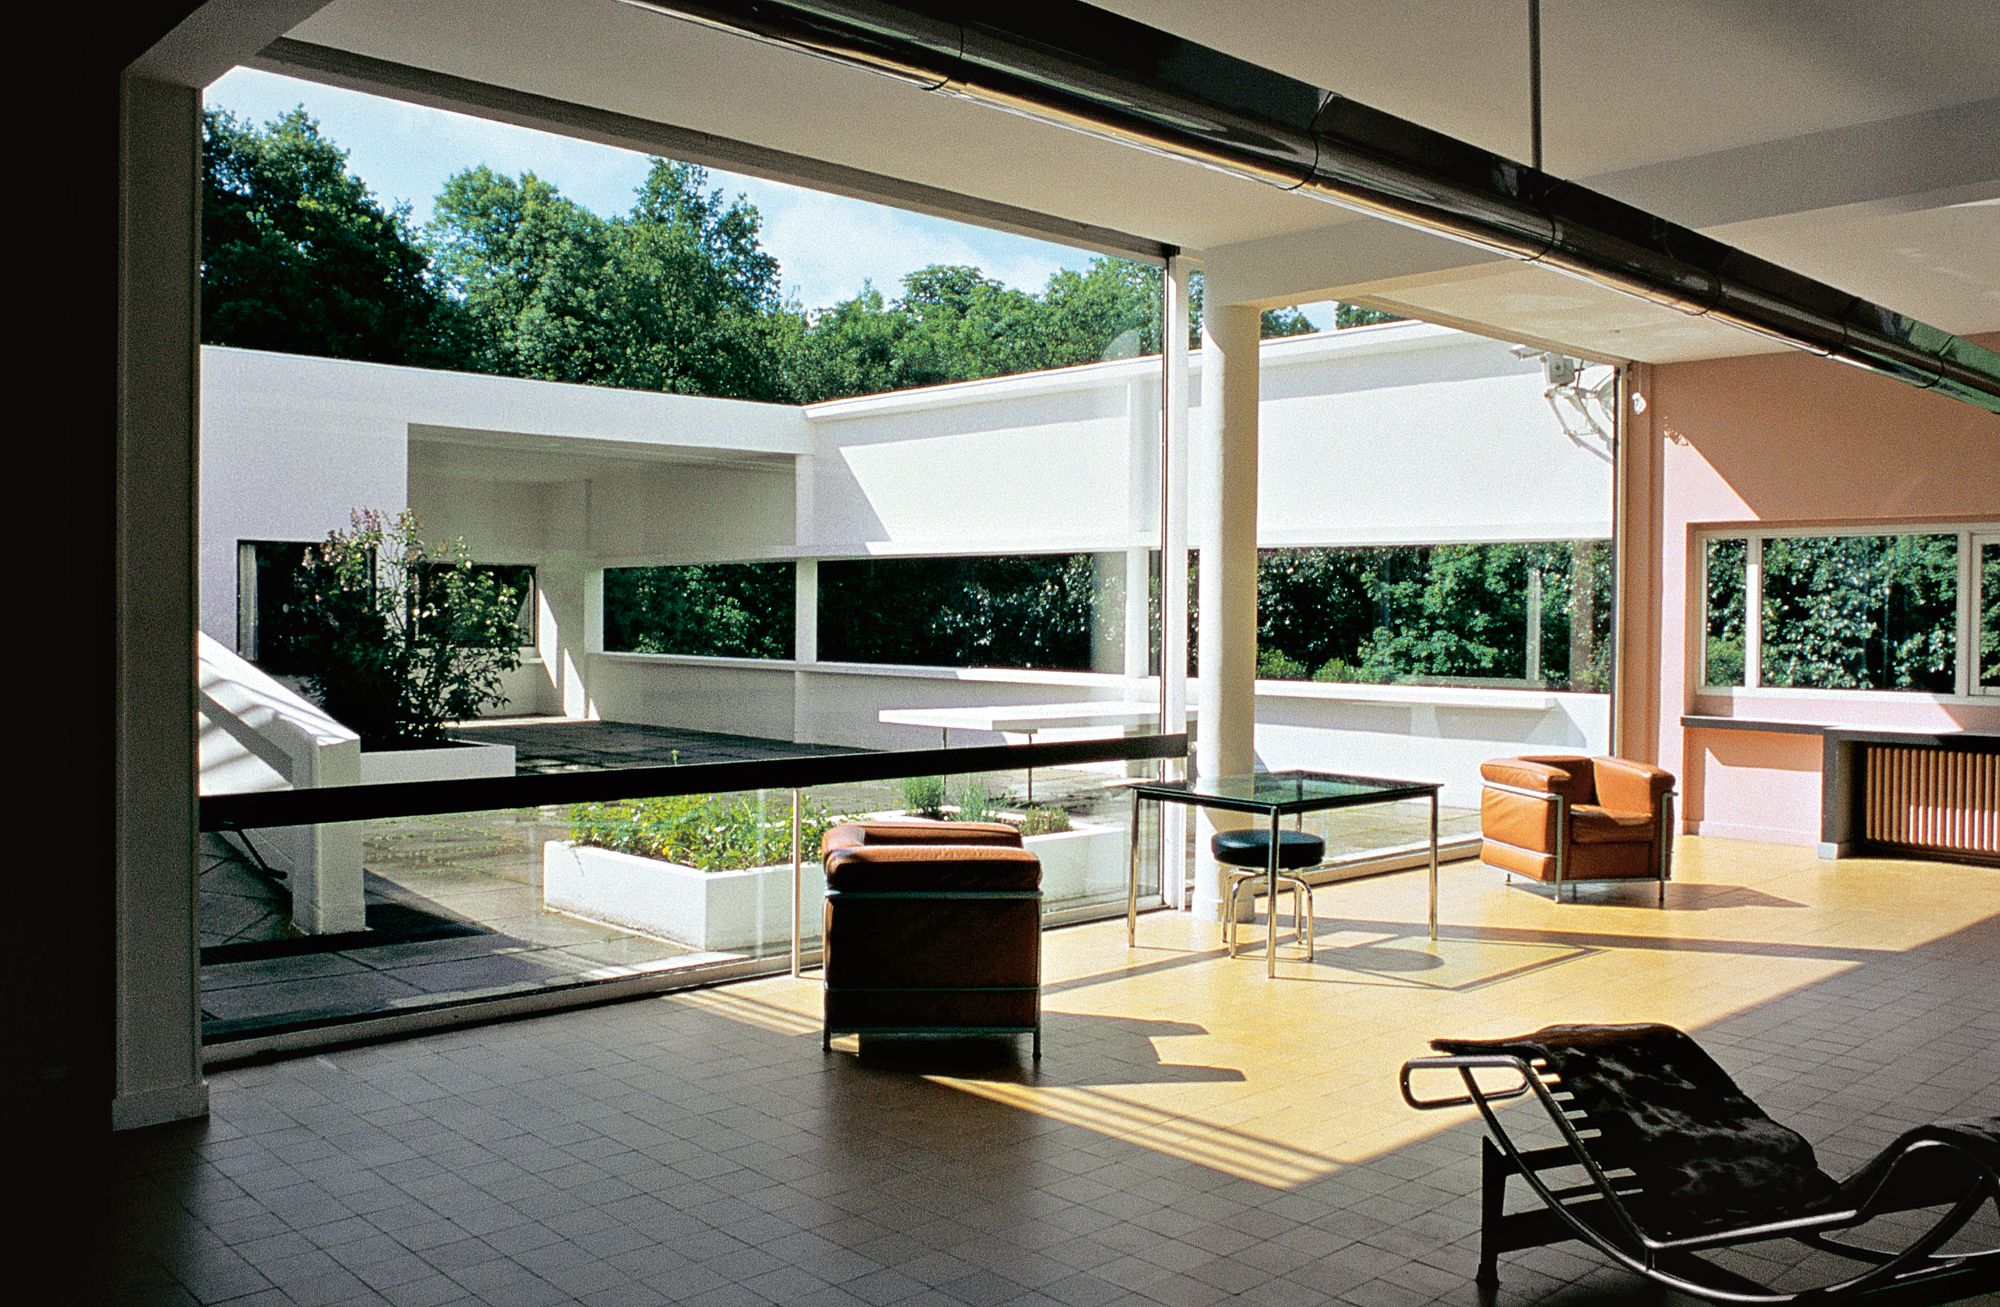 villa savoye essay The villa savoye is a private weekend home built in the 1928 (completed in 1931) for the savoye family located on the summit of a small hill surrounded by trees just outside paris it is a building of complex geometry and undecorated white surfaces, which exemplifies the international style as well as le corbusier's ideas of purism.